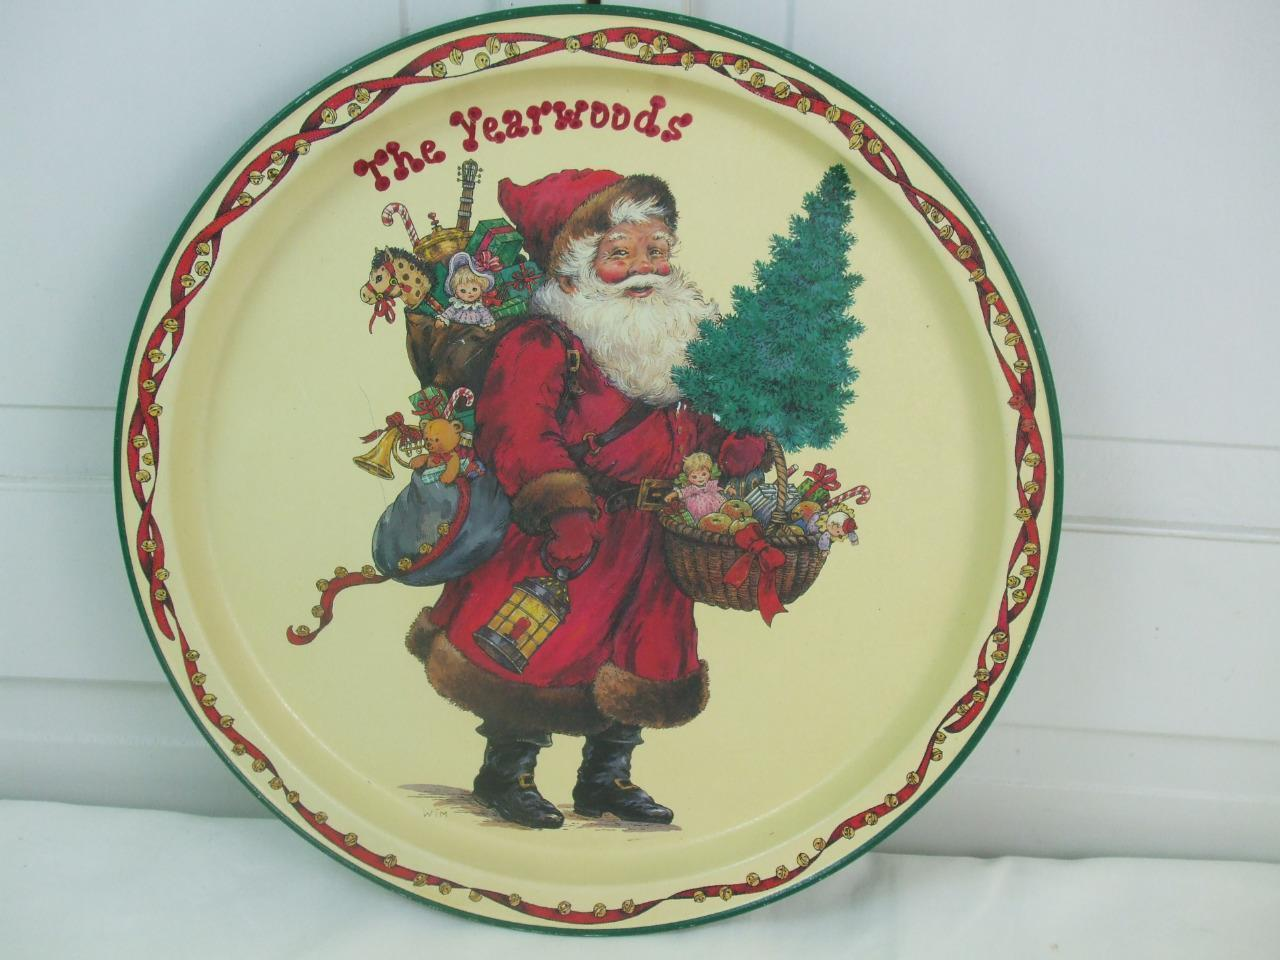 Primary image for Vintage Round Tin Tray Santa Clause Potpourri Press 1991 The Yearwoods 13.5""